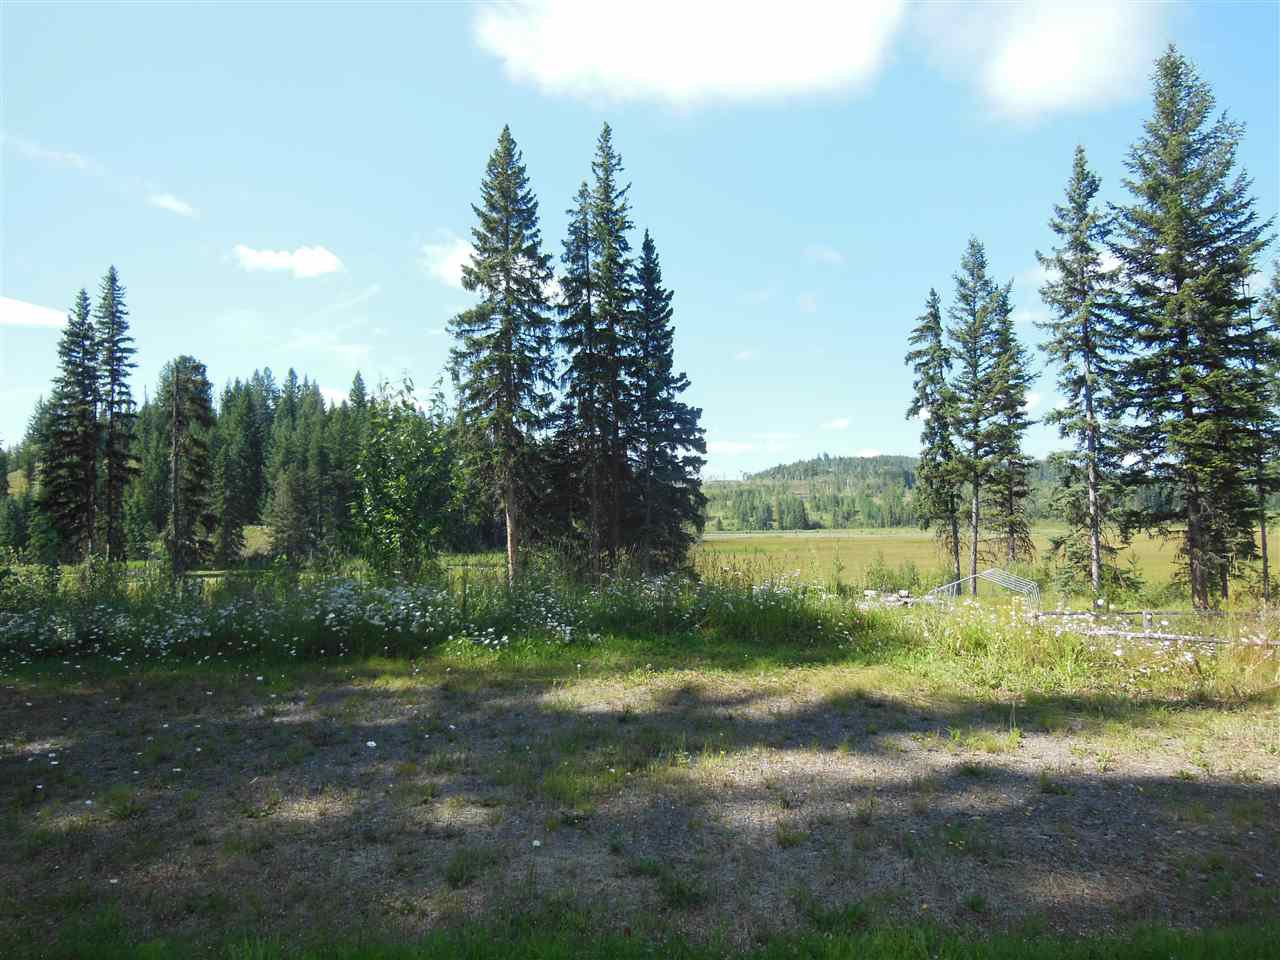 Photo 28: Photos: 3535 WESTWICK PIT Road: 150 Mile House House for sale (Williams Lake (Zone 27))  : MLS®# R2488772